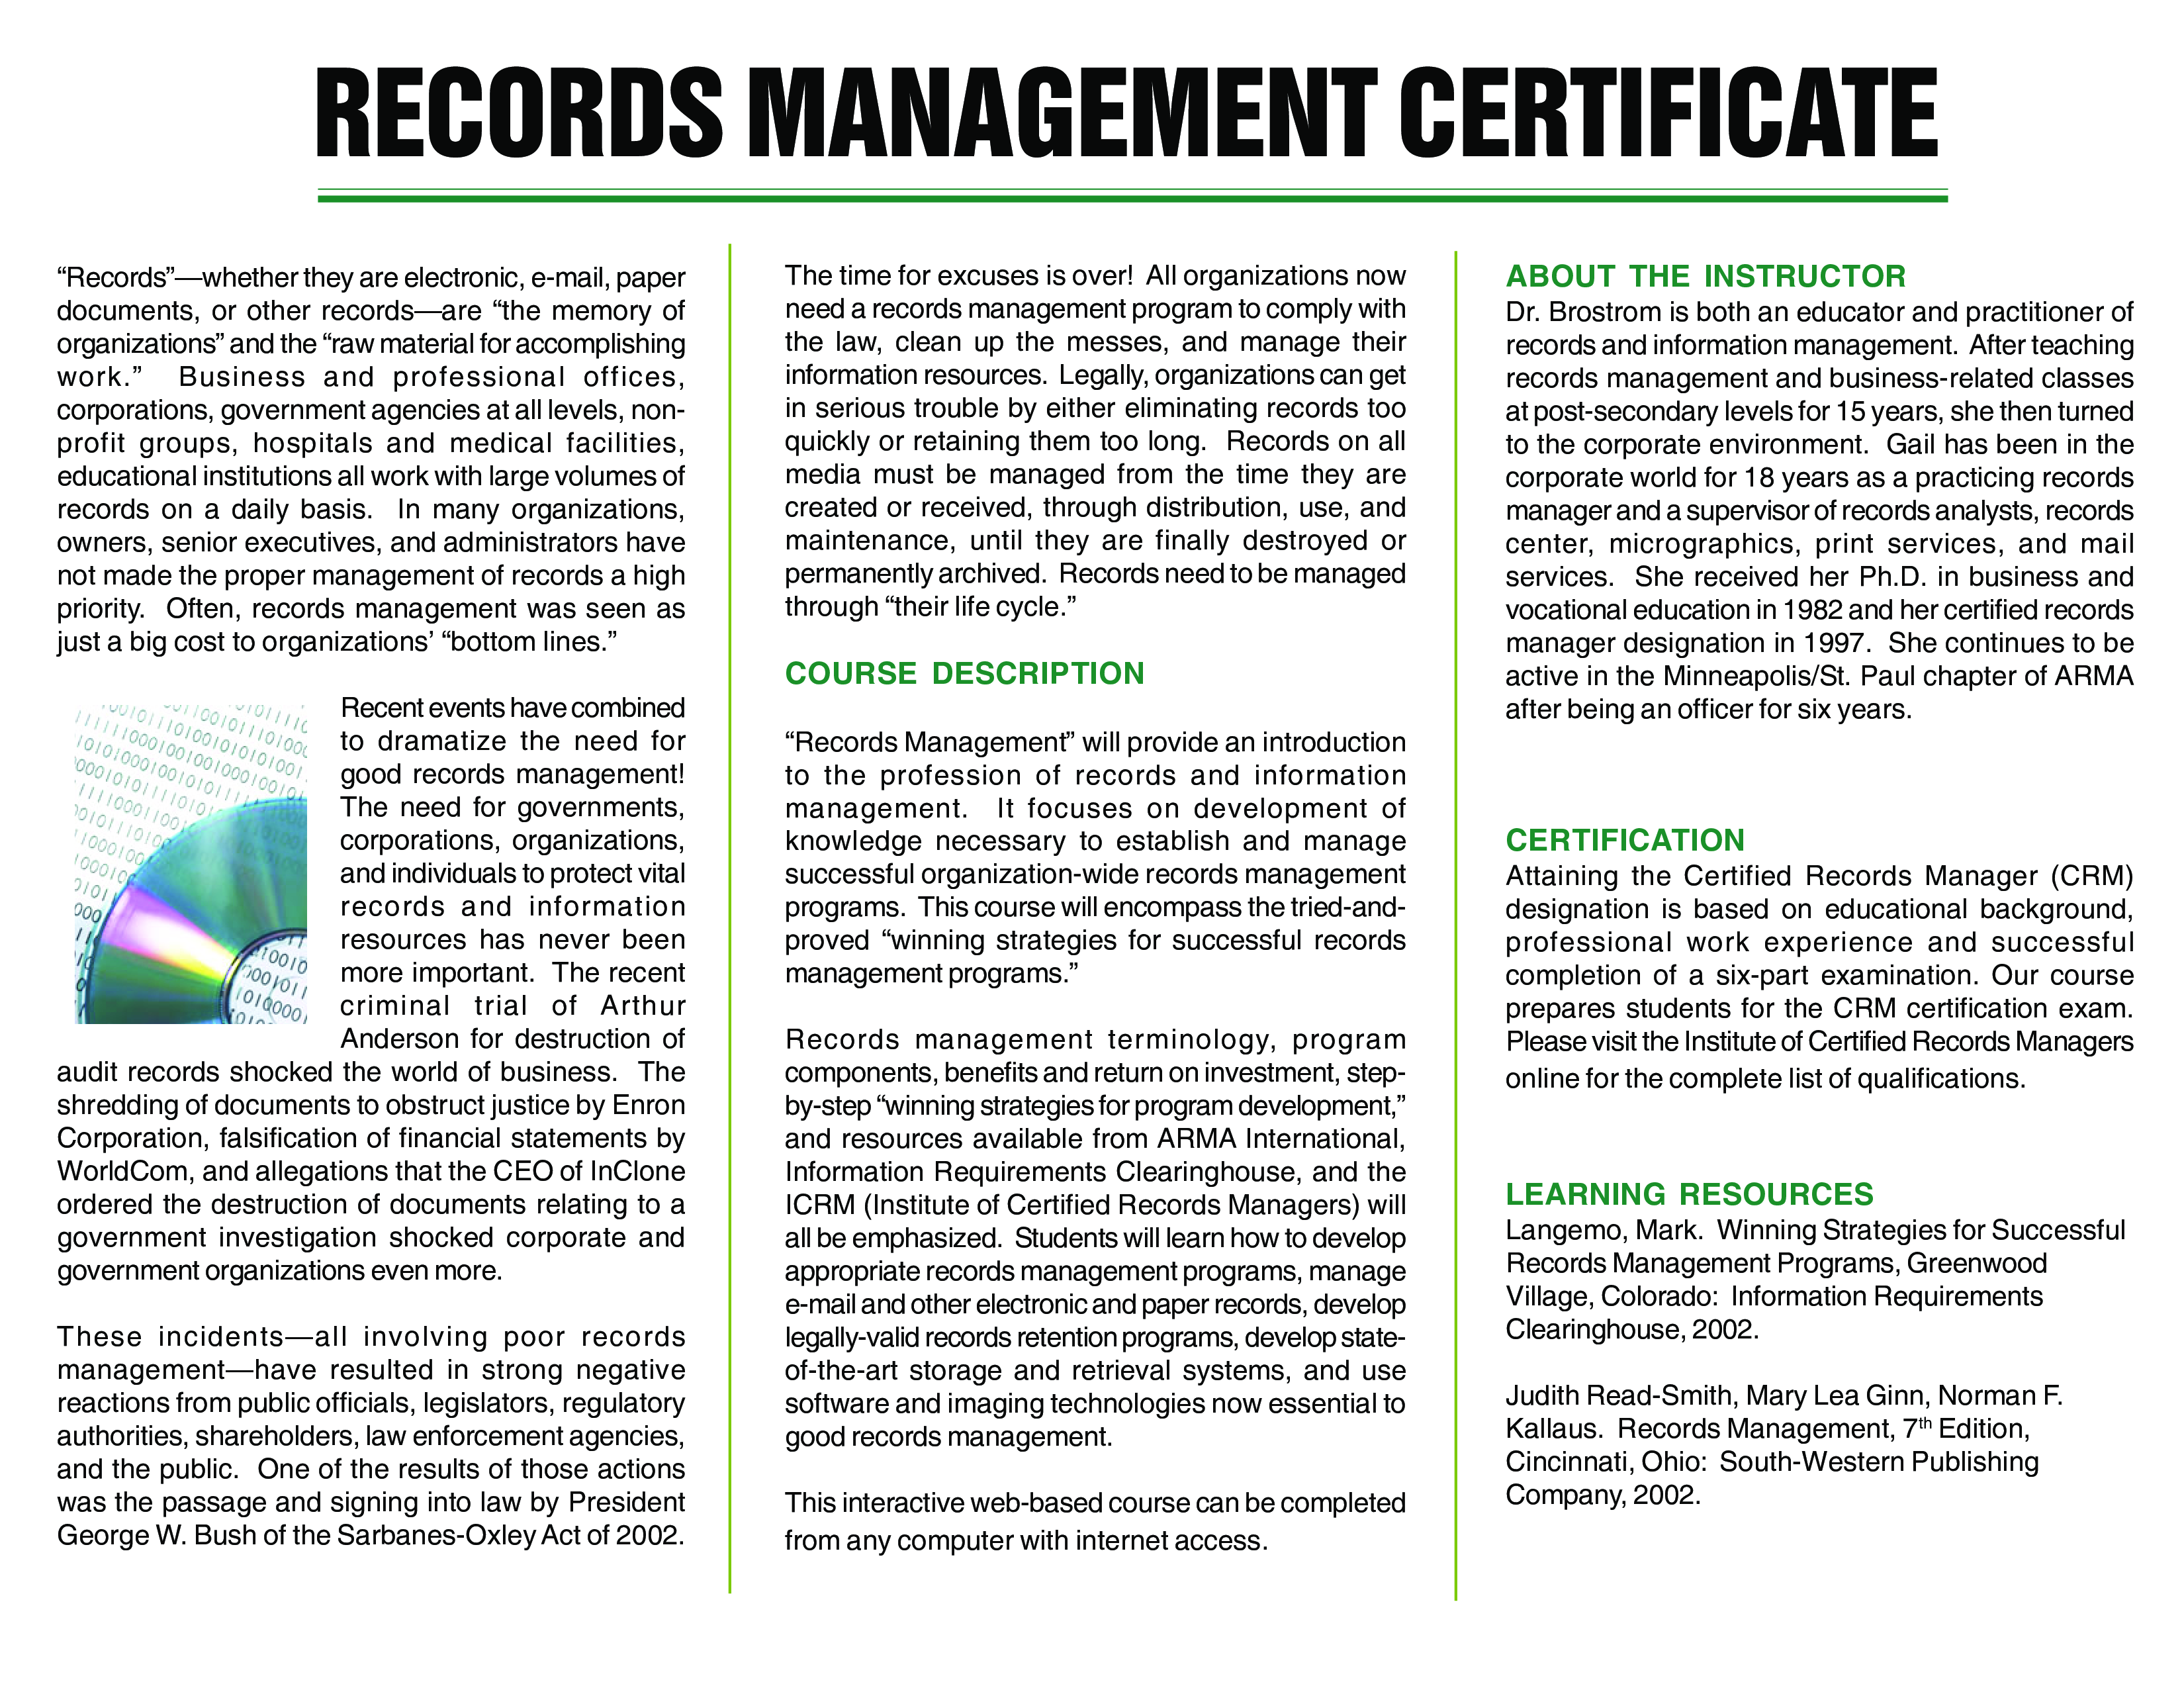 Records Management Training Certificate main image